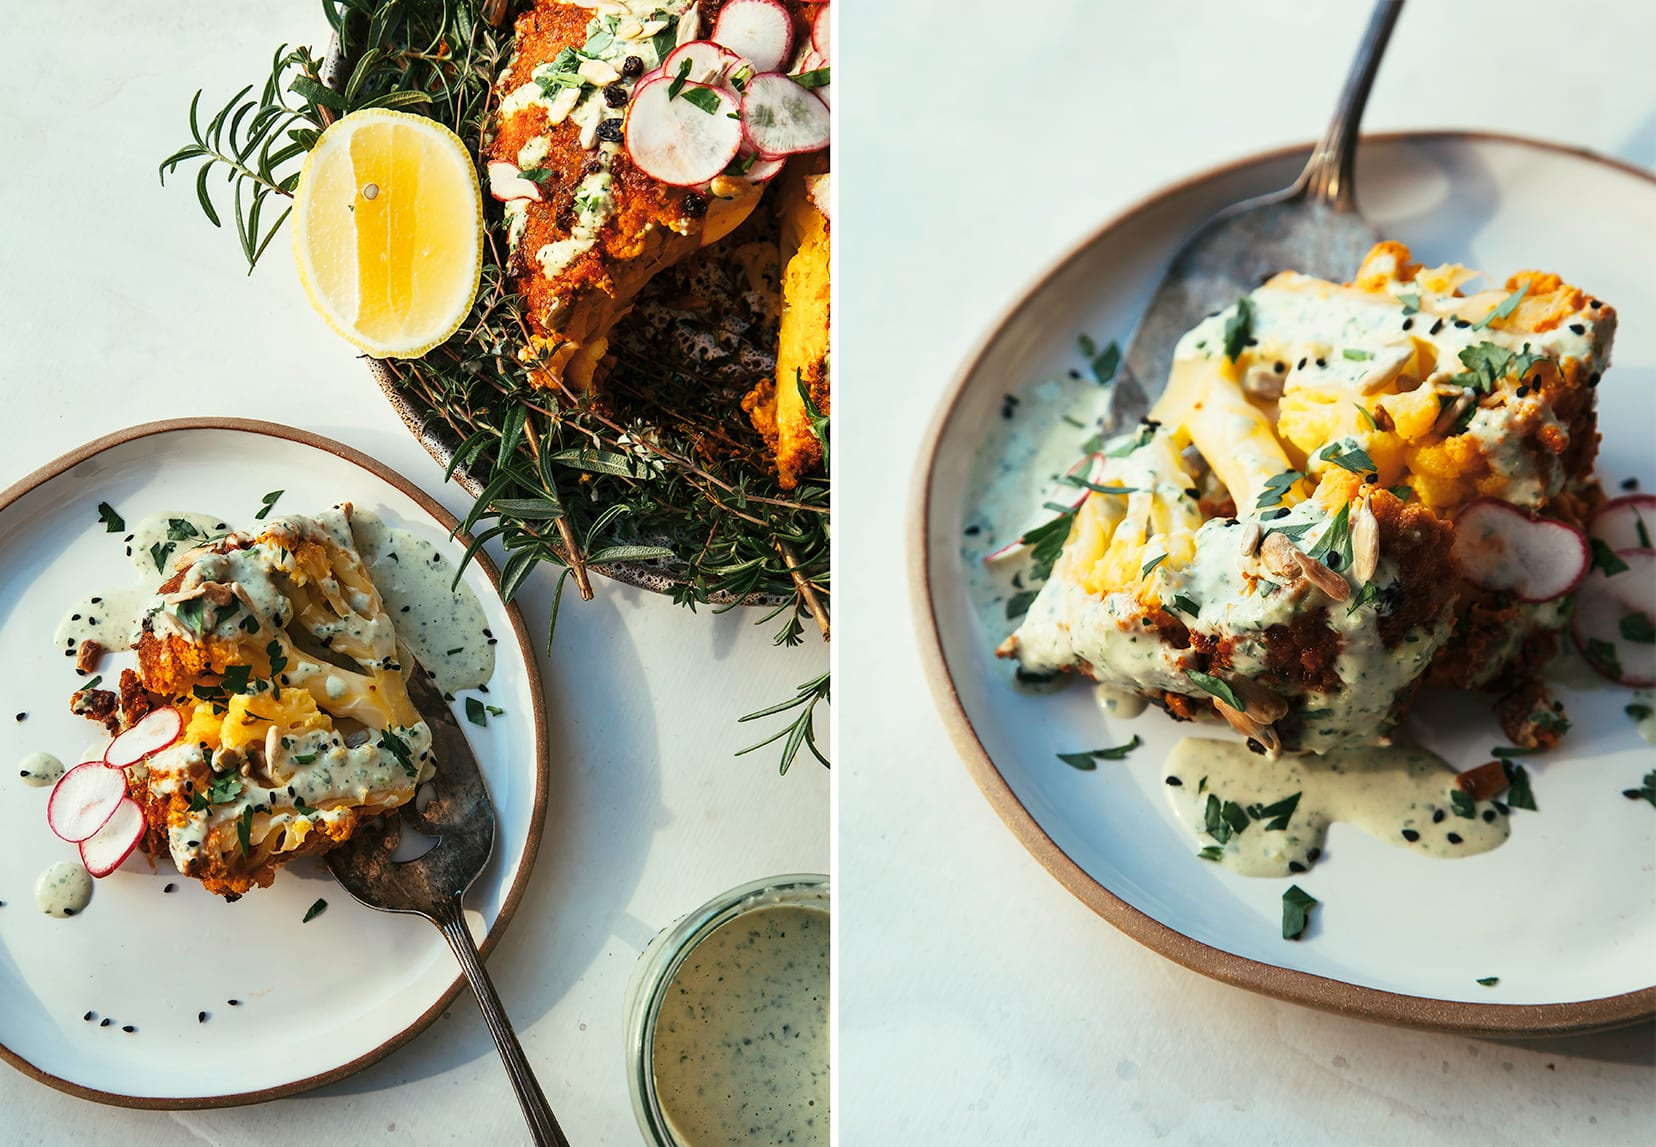 Two images show slices from a whole roasted cauliflower from two different angles.